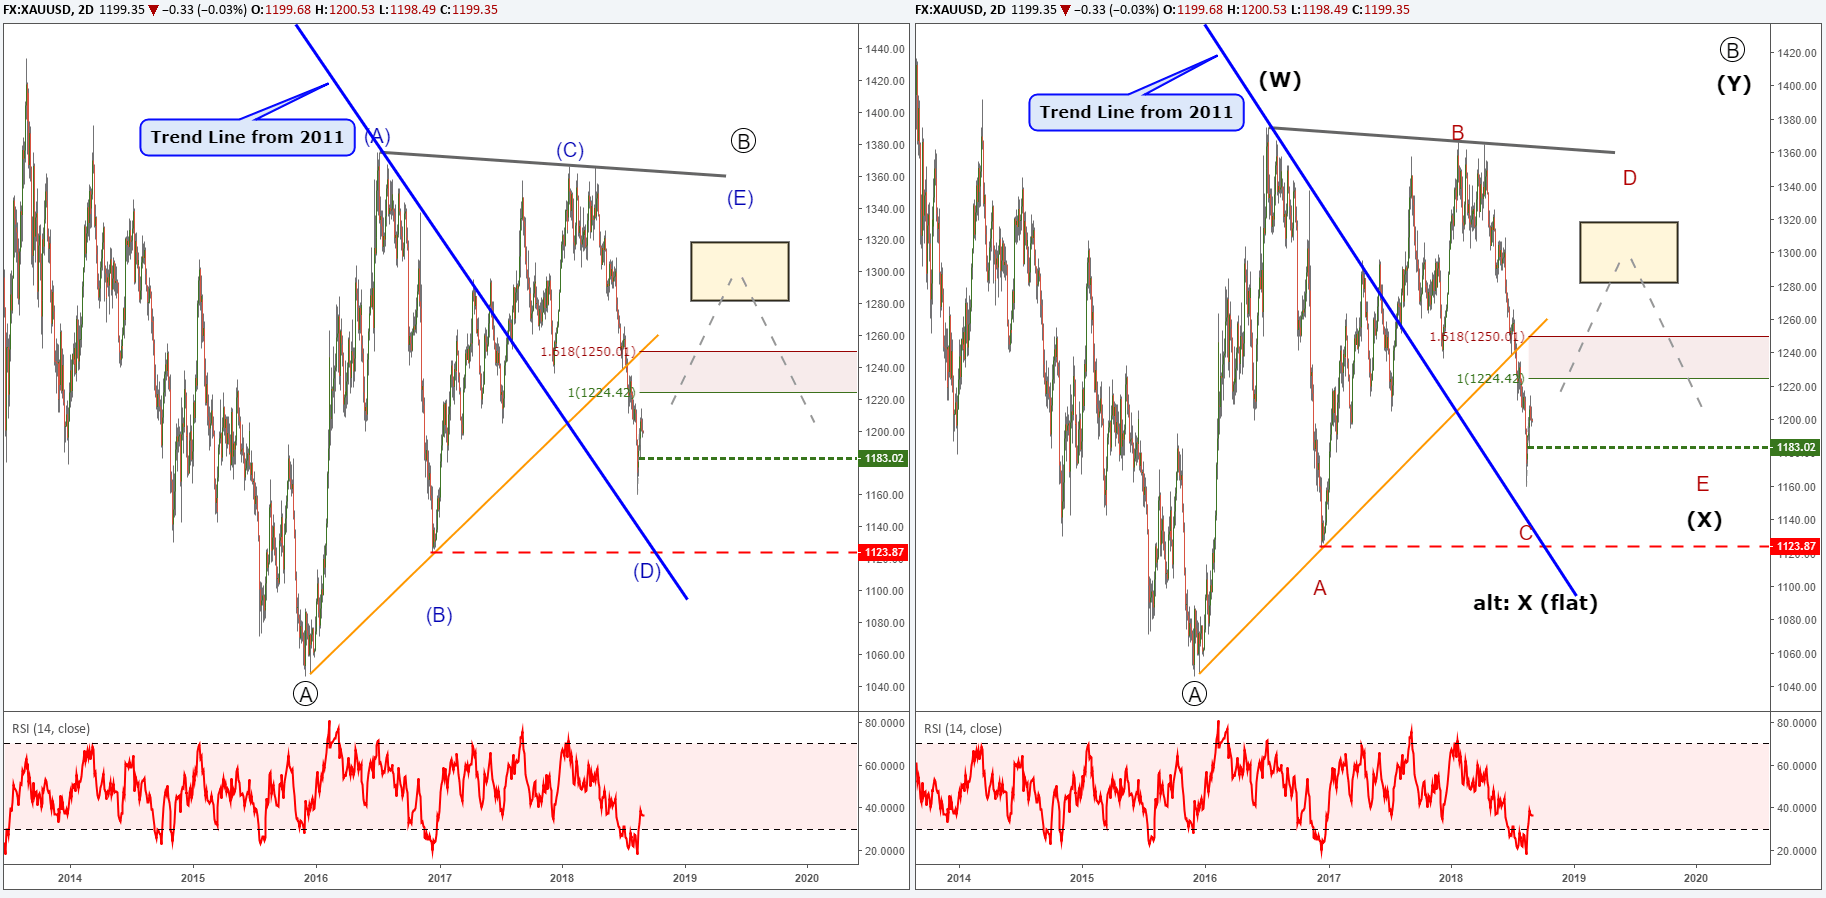 Gold Price Chart With Elliott Wave Labels Ilrating A Triangle Pattern